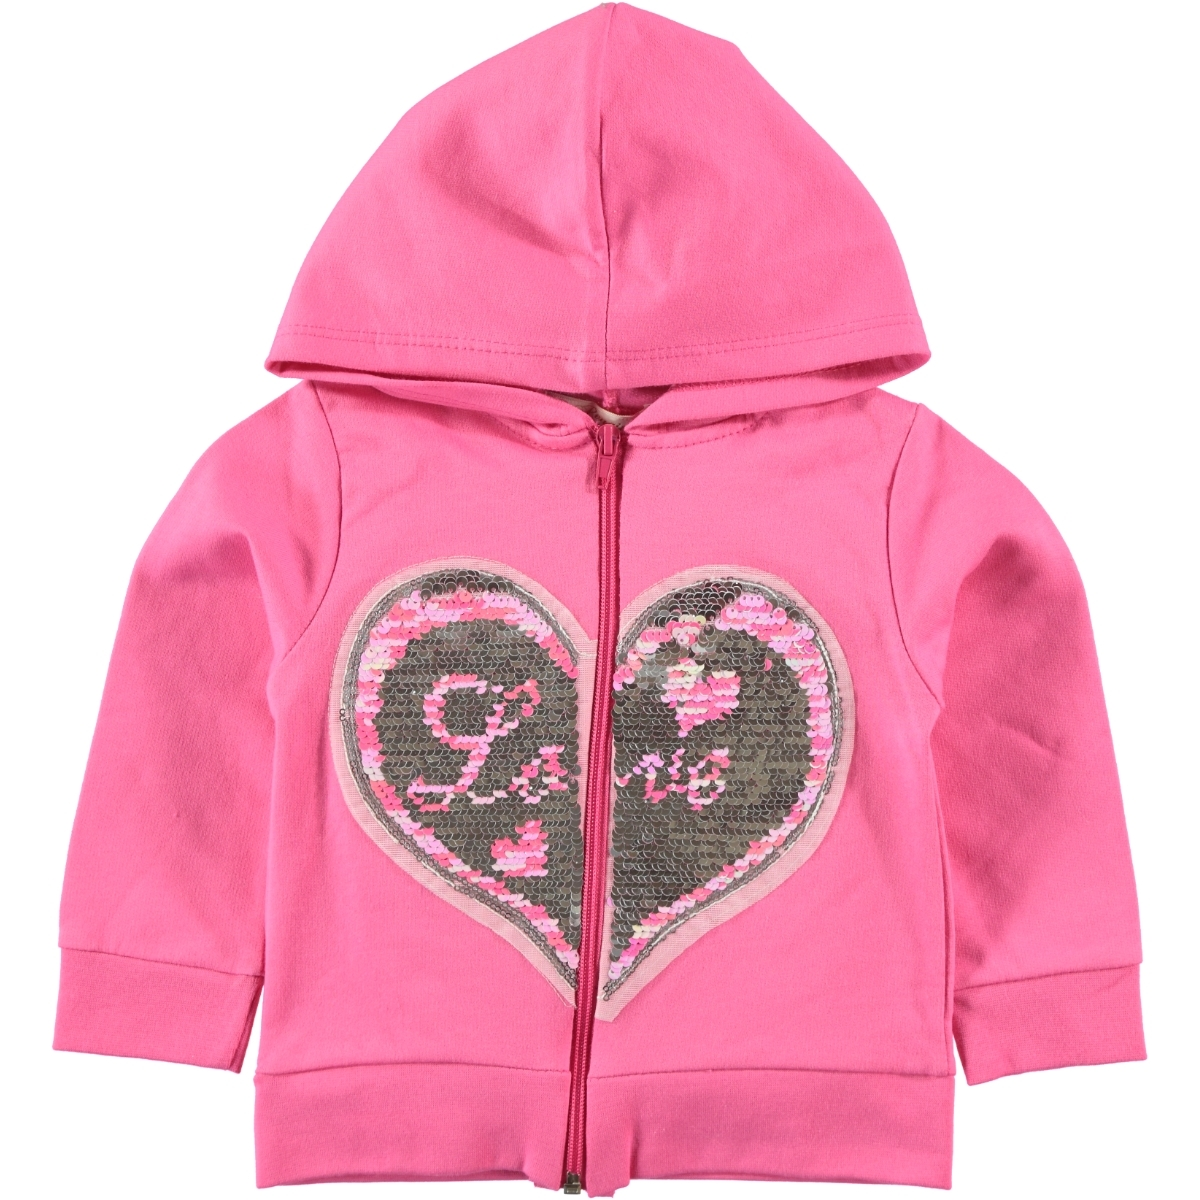 Pengim Fuchsia Hooded Cardigan Girls Age 1-4